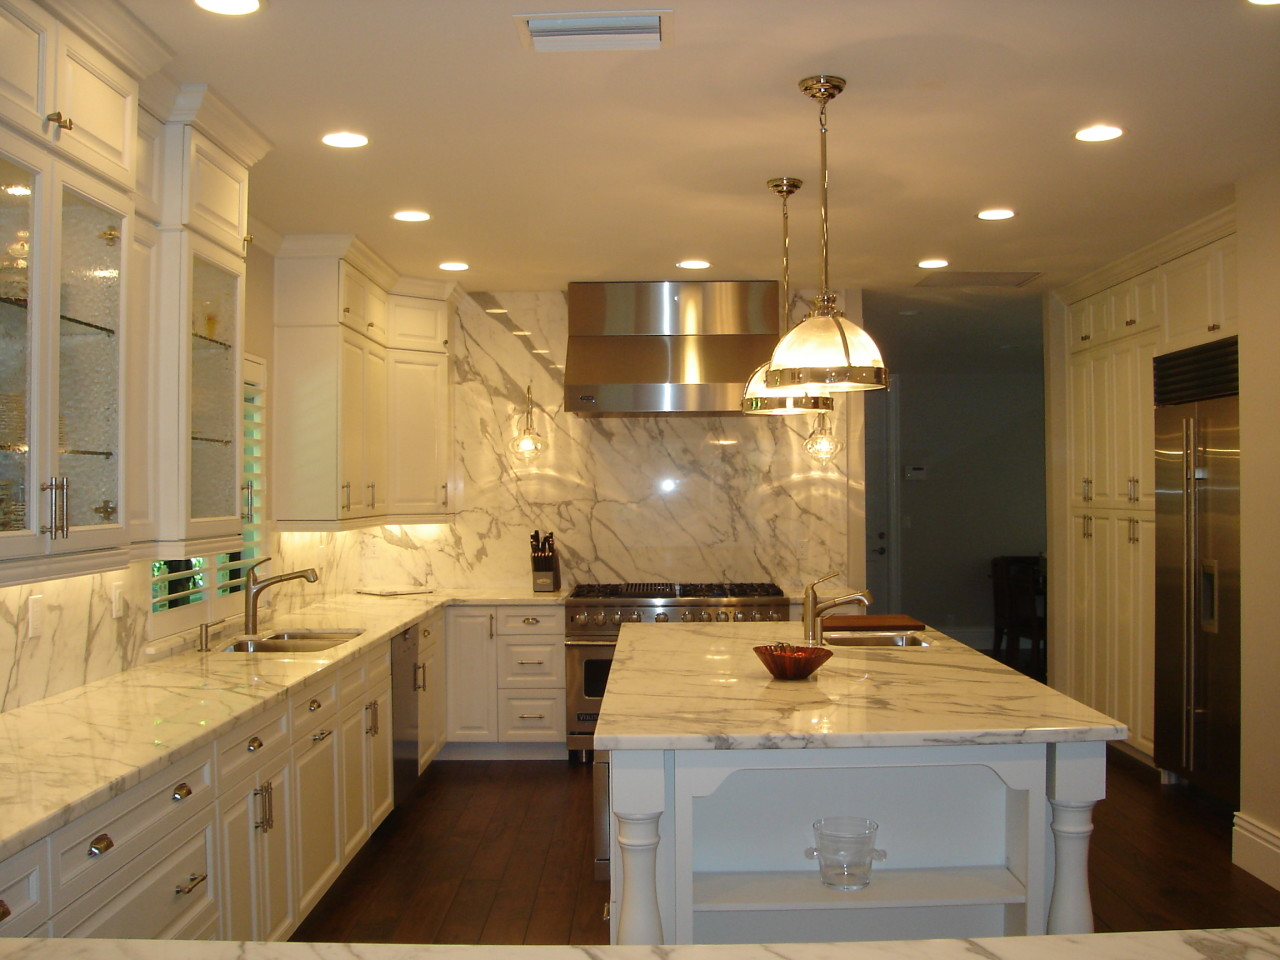 Transitional kitchen design bath kitchen creations for Kitchen bathroom design